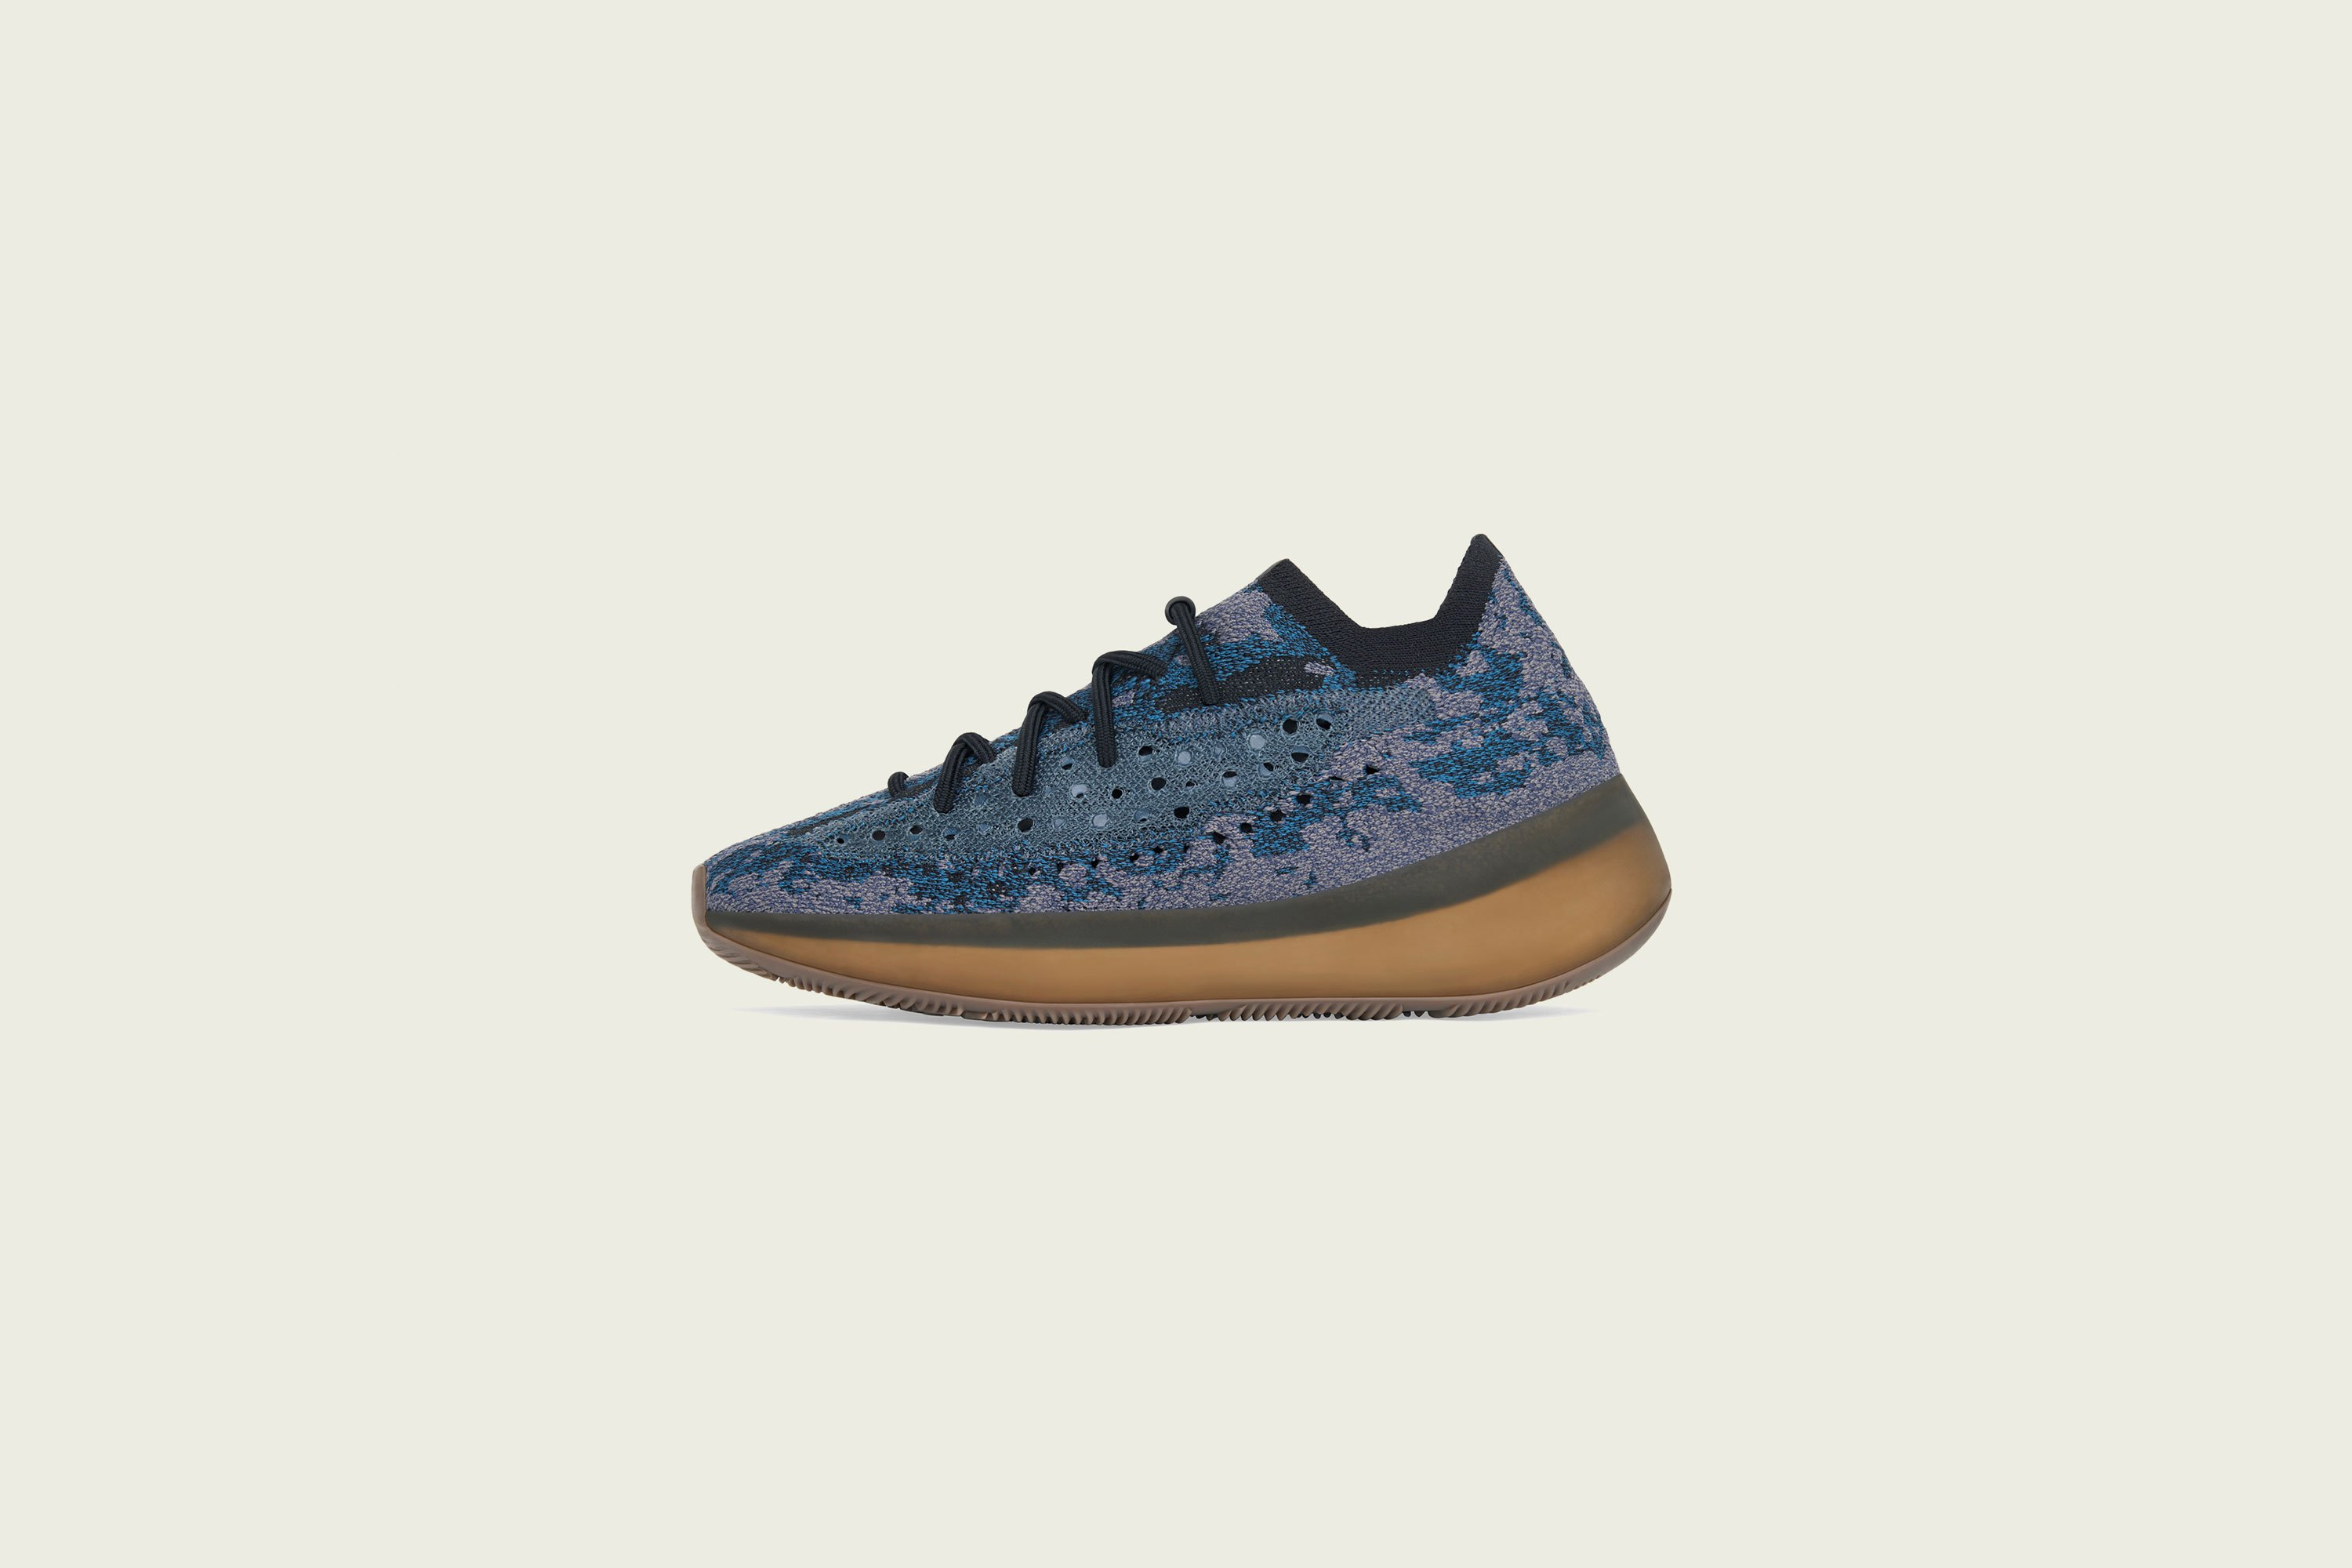 Up There Store - adidas Originals Yeezy Boost 380 'Covellite'